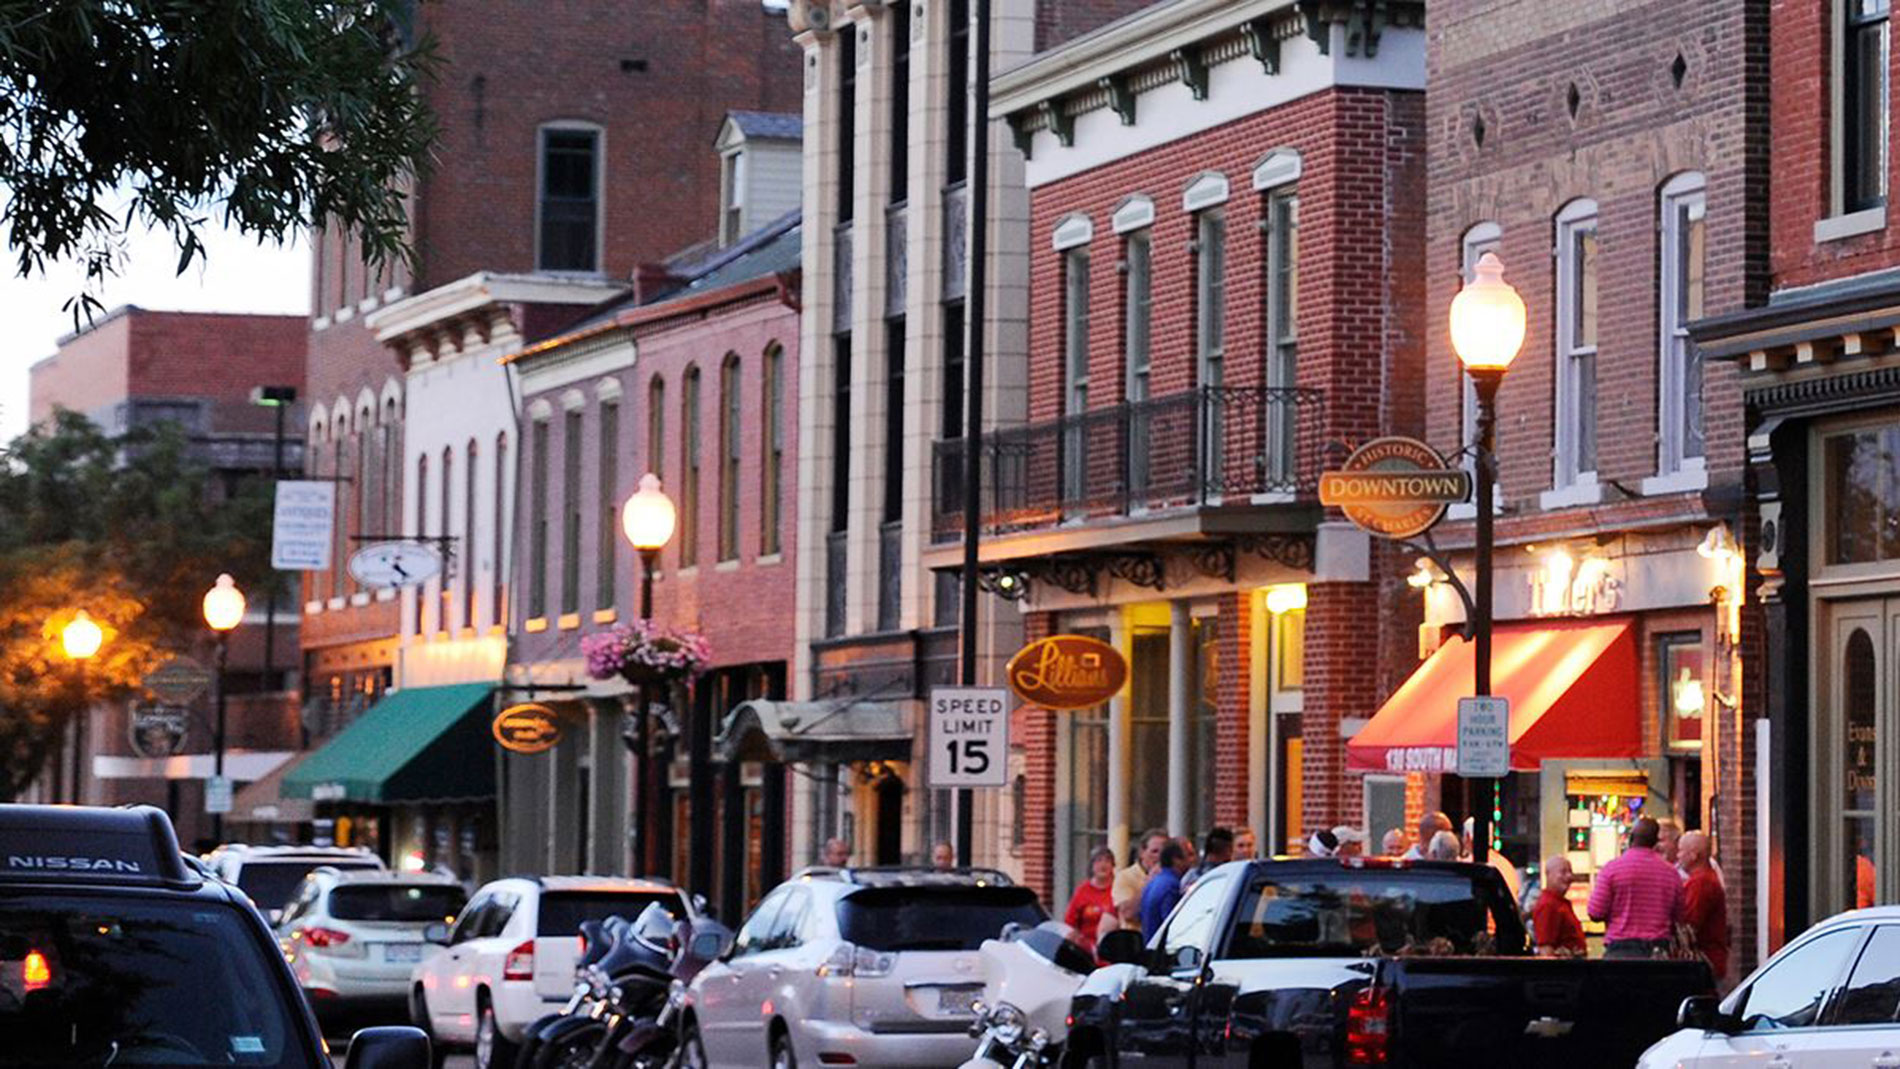 St. Charles County orders restaurants, bars and nightclubs to close at 11 p.m.